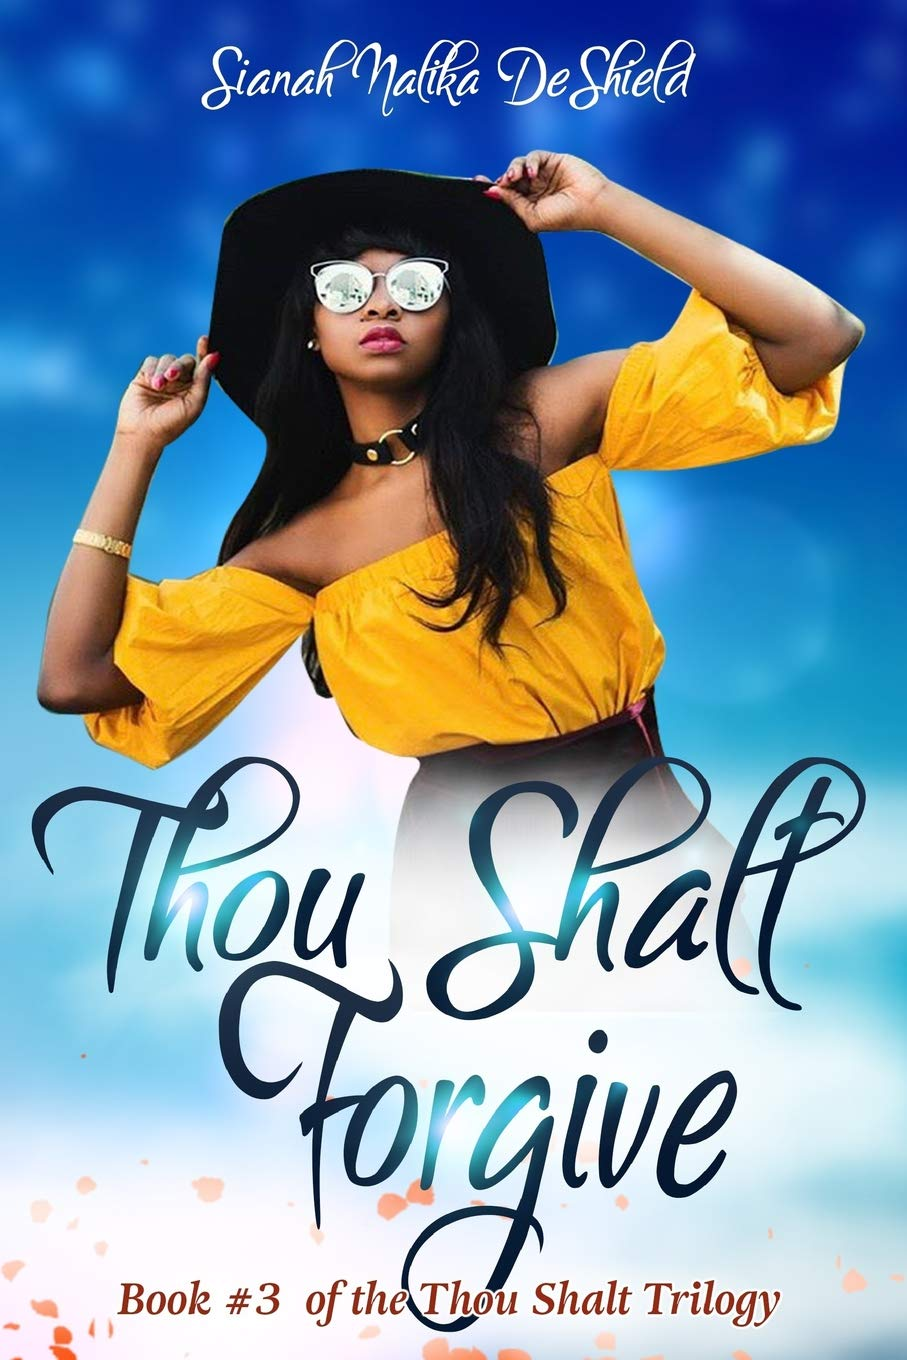 Thou Shalt Forgive (Thou Shalt Trilogy) (Volume 3) Paperback – August 20, 2018 Sianah Nalika DeShield 1725970147 FICTION / Family Life